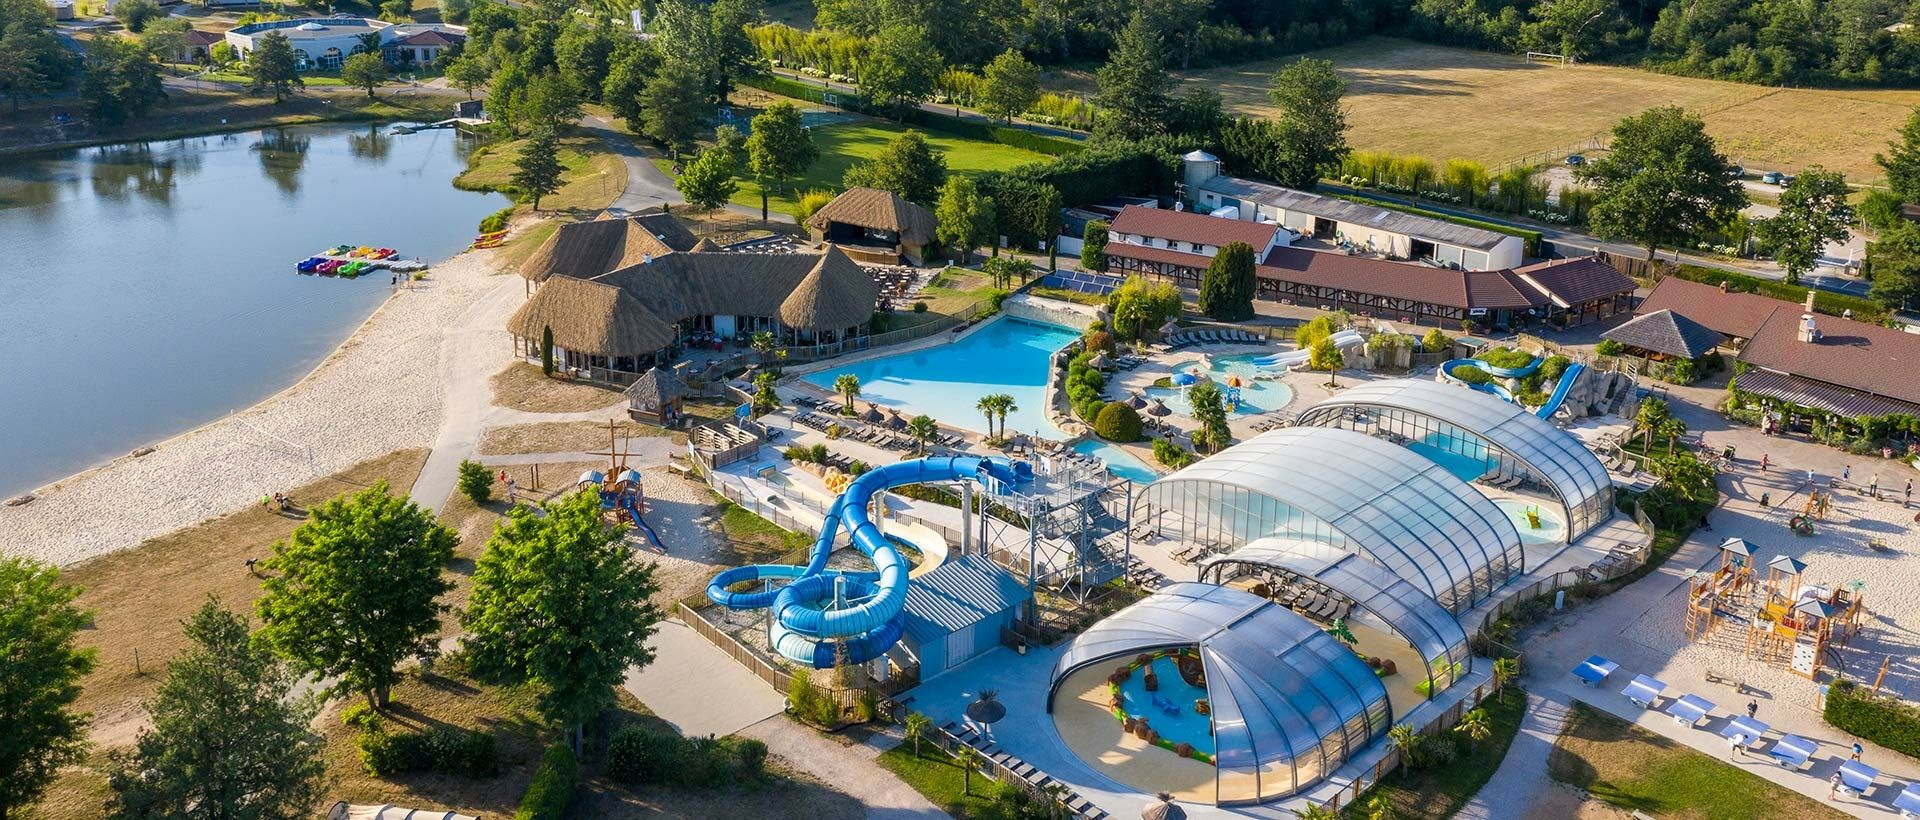 Camping Water parks with waterslides